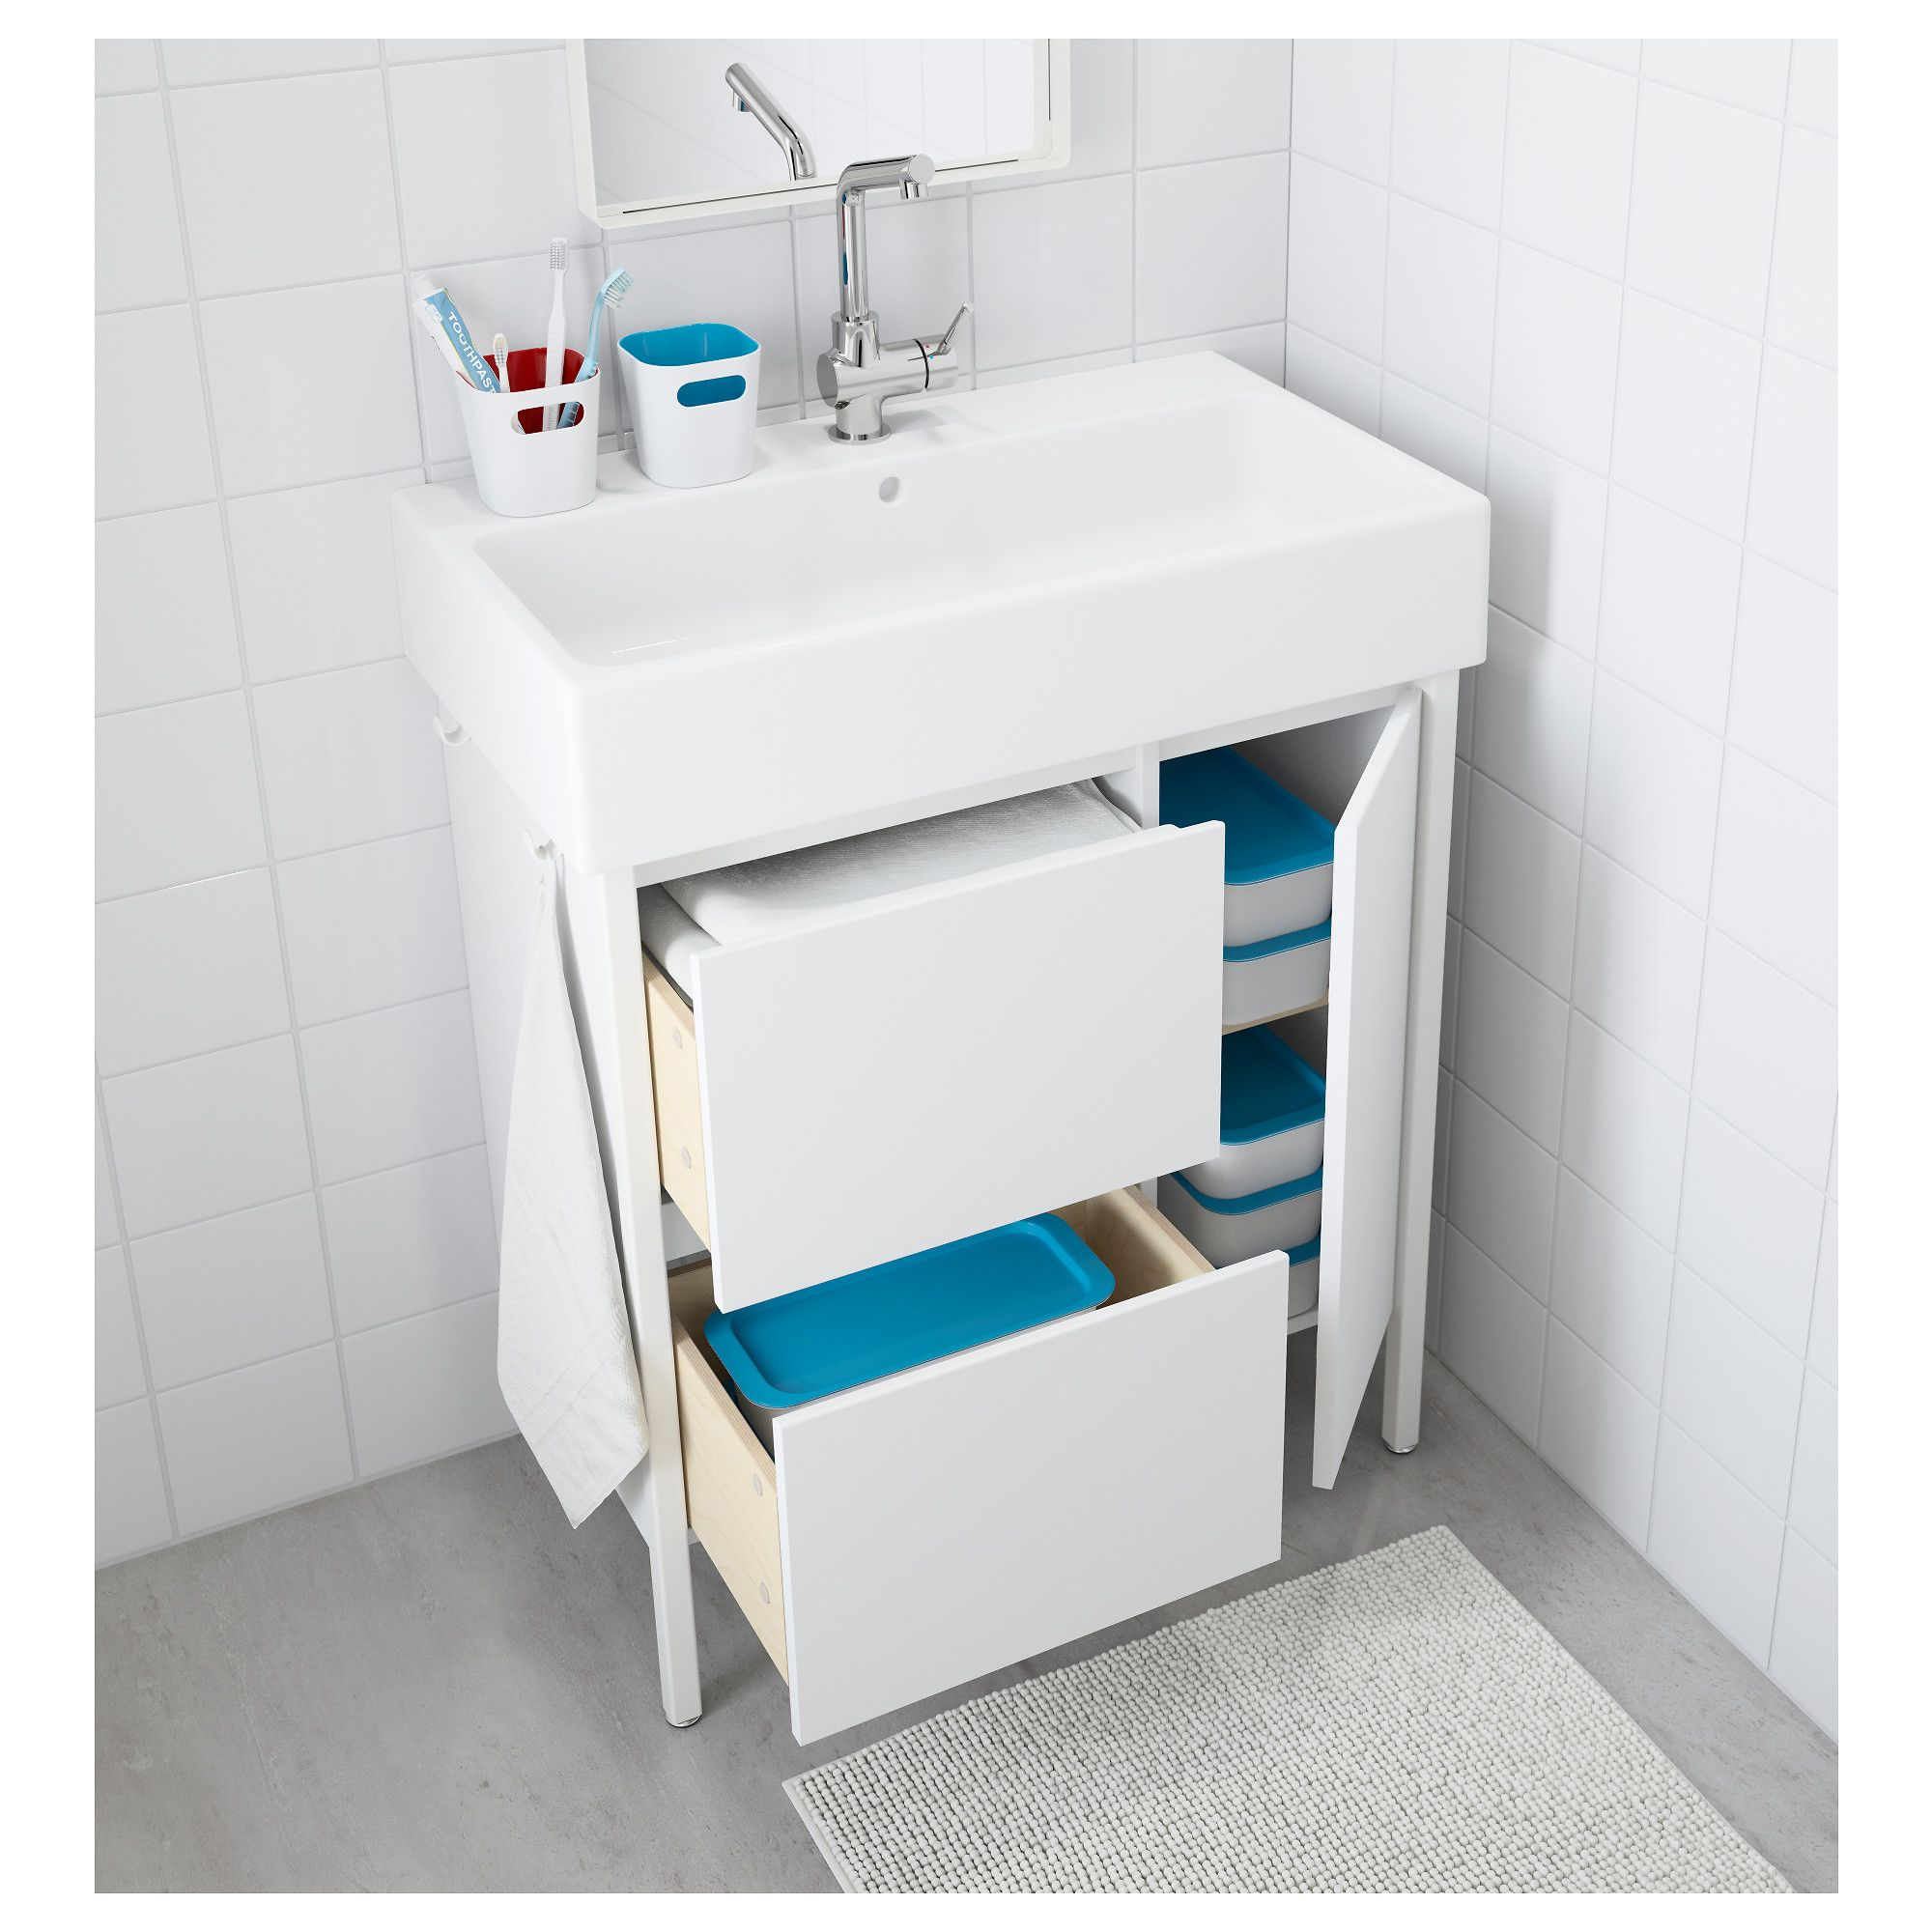 Ikea Us Furniture And Home Furnishings Sink Cabinet Ikea Ikea Online